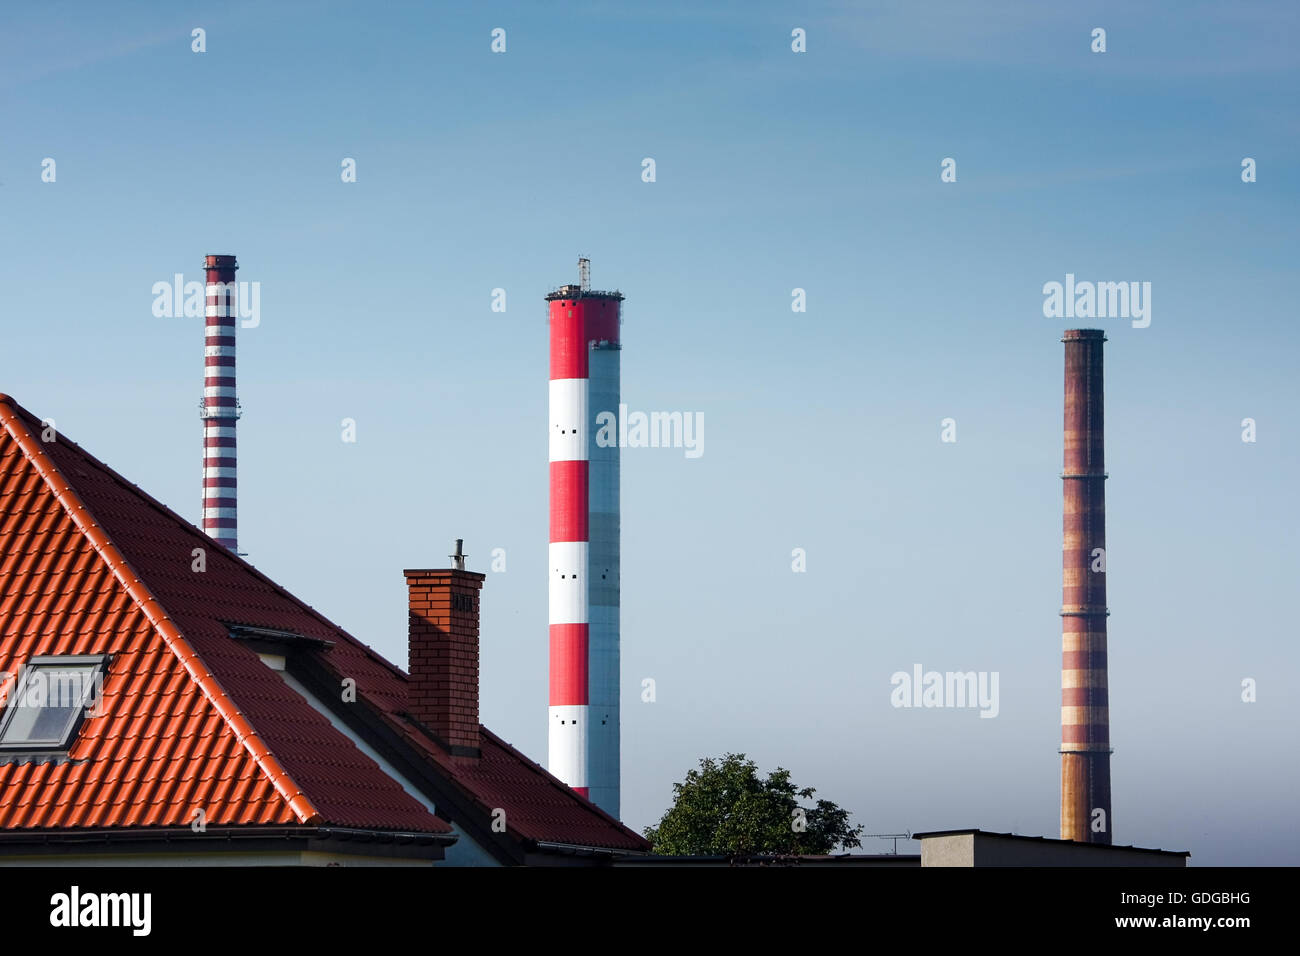 Air pollution, chimneys of a power plant - Stock Image